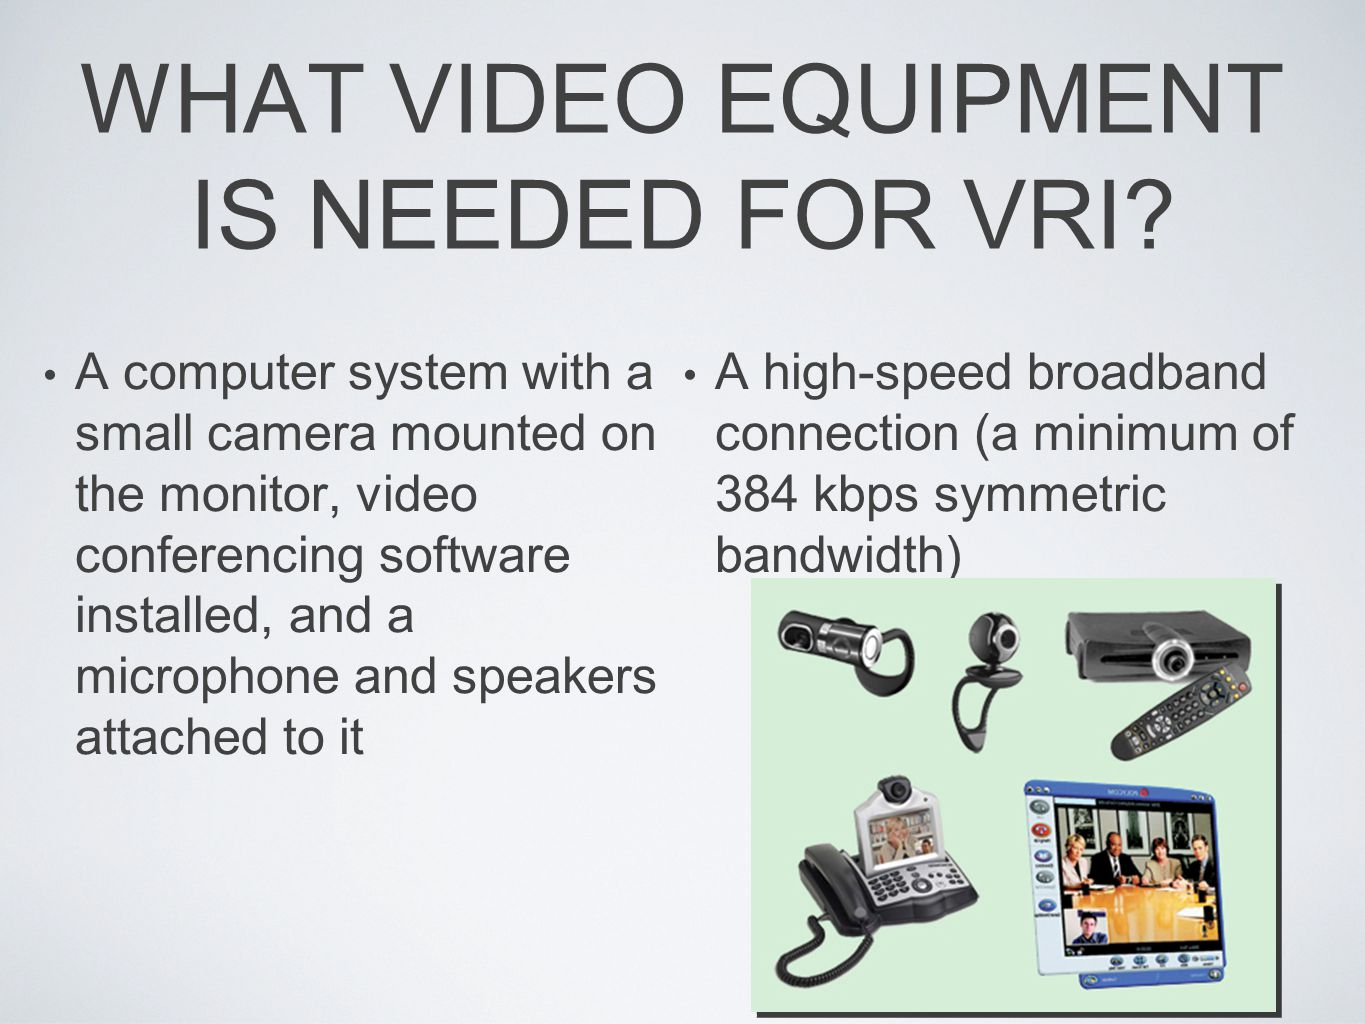 WHAT VIDEO EQUIPMENT IS NEEDED FOR VRI